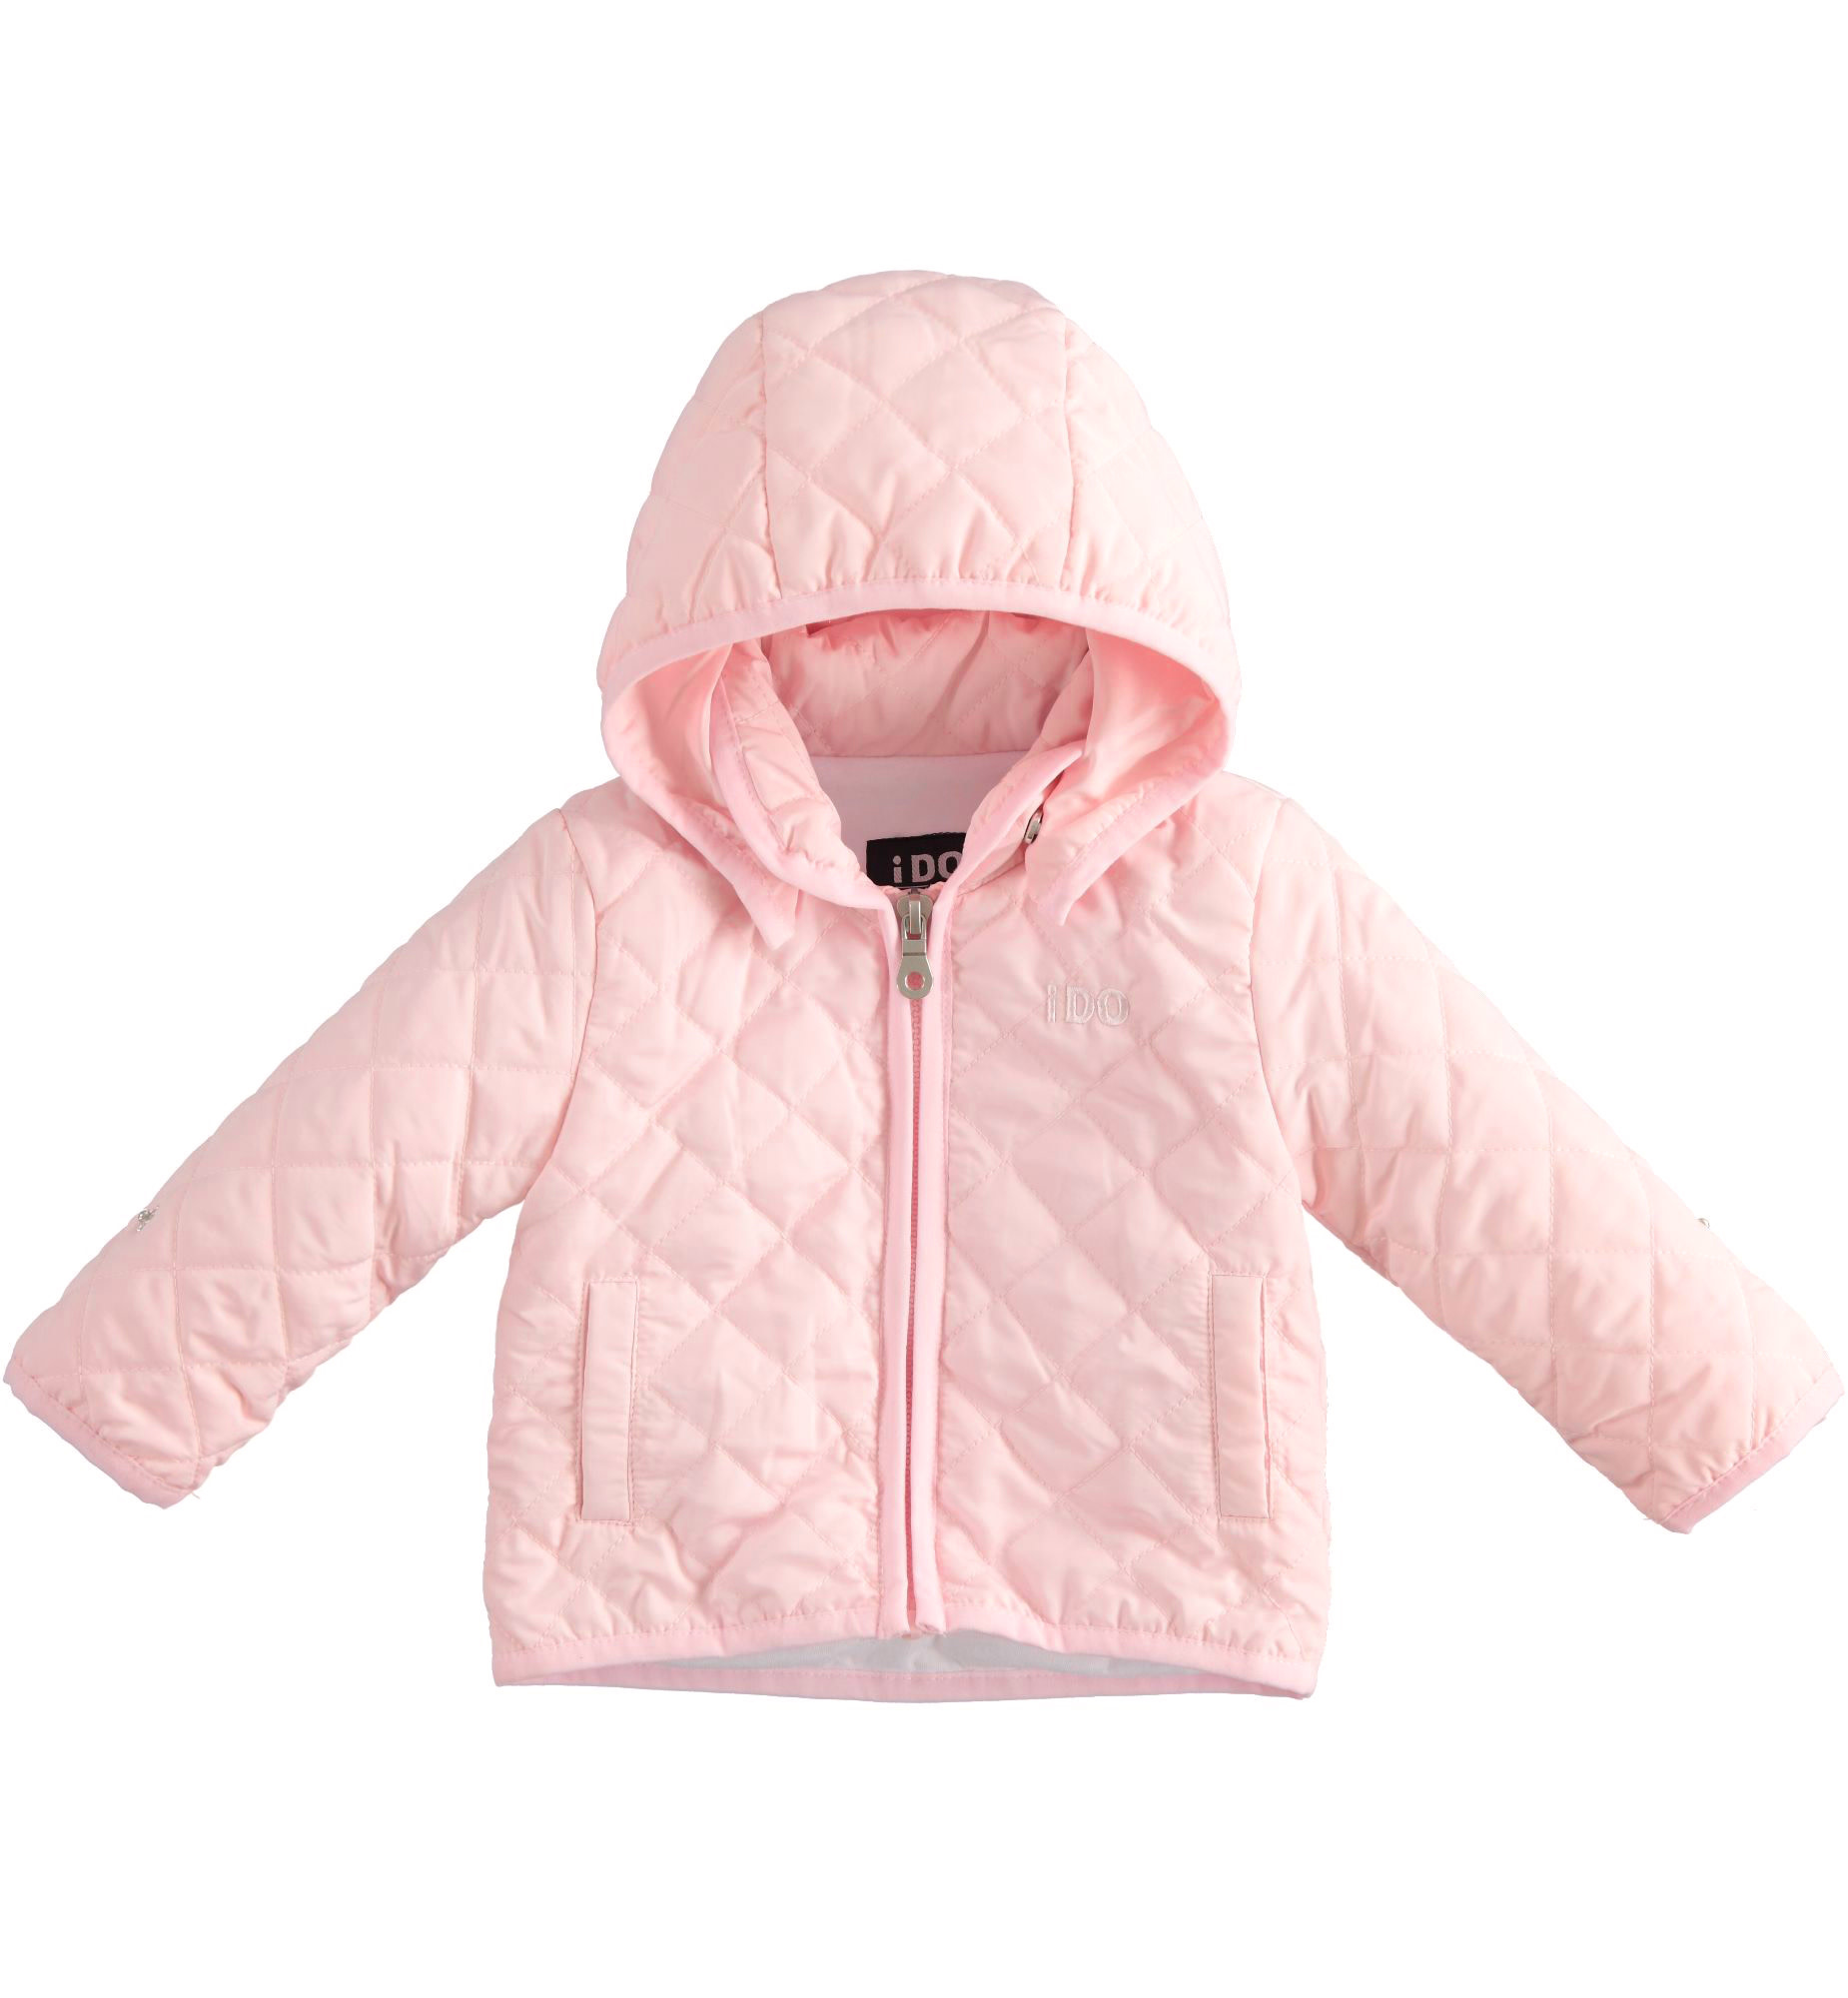 iDo IDo SS20 girls Pink quilted jacket J159